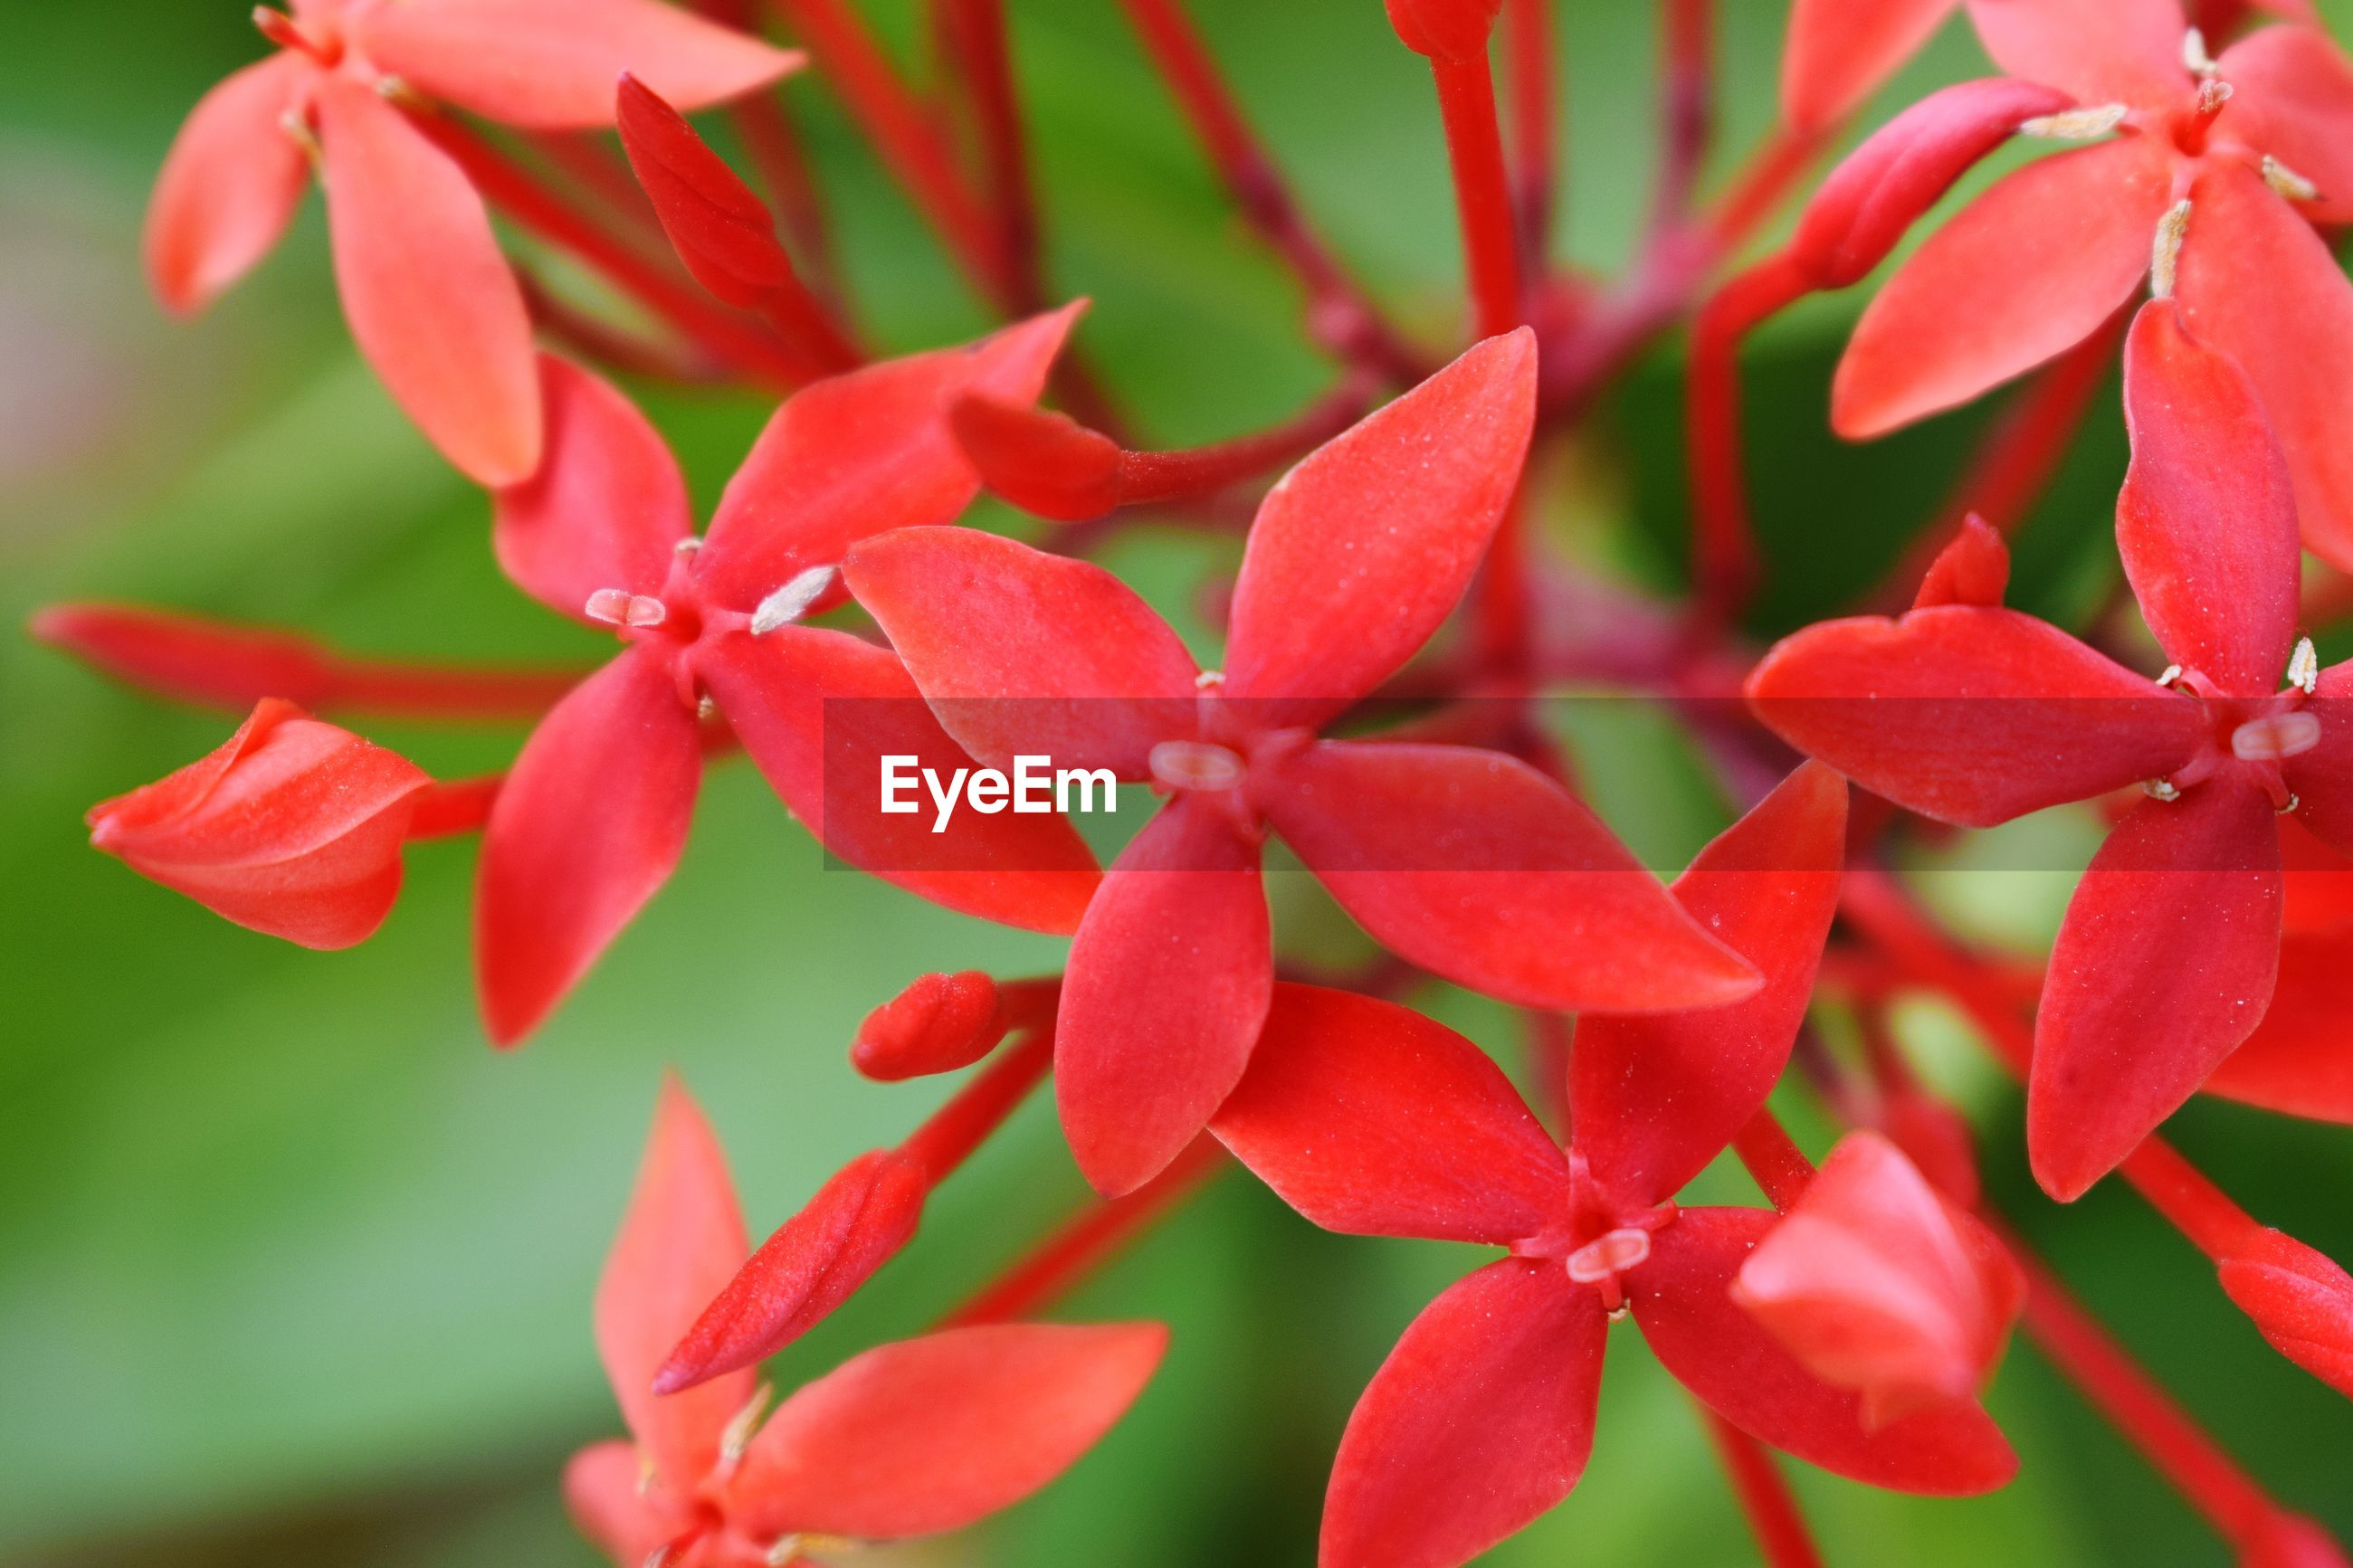 CLOSE-UP OF RED FLOWERING PLANT WITH FLOWERS